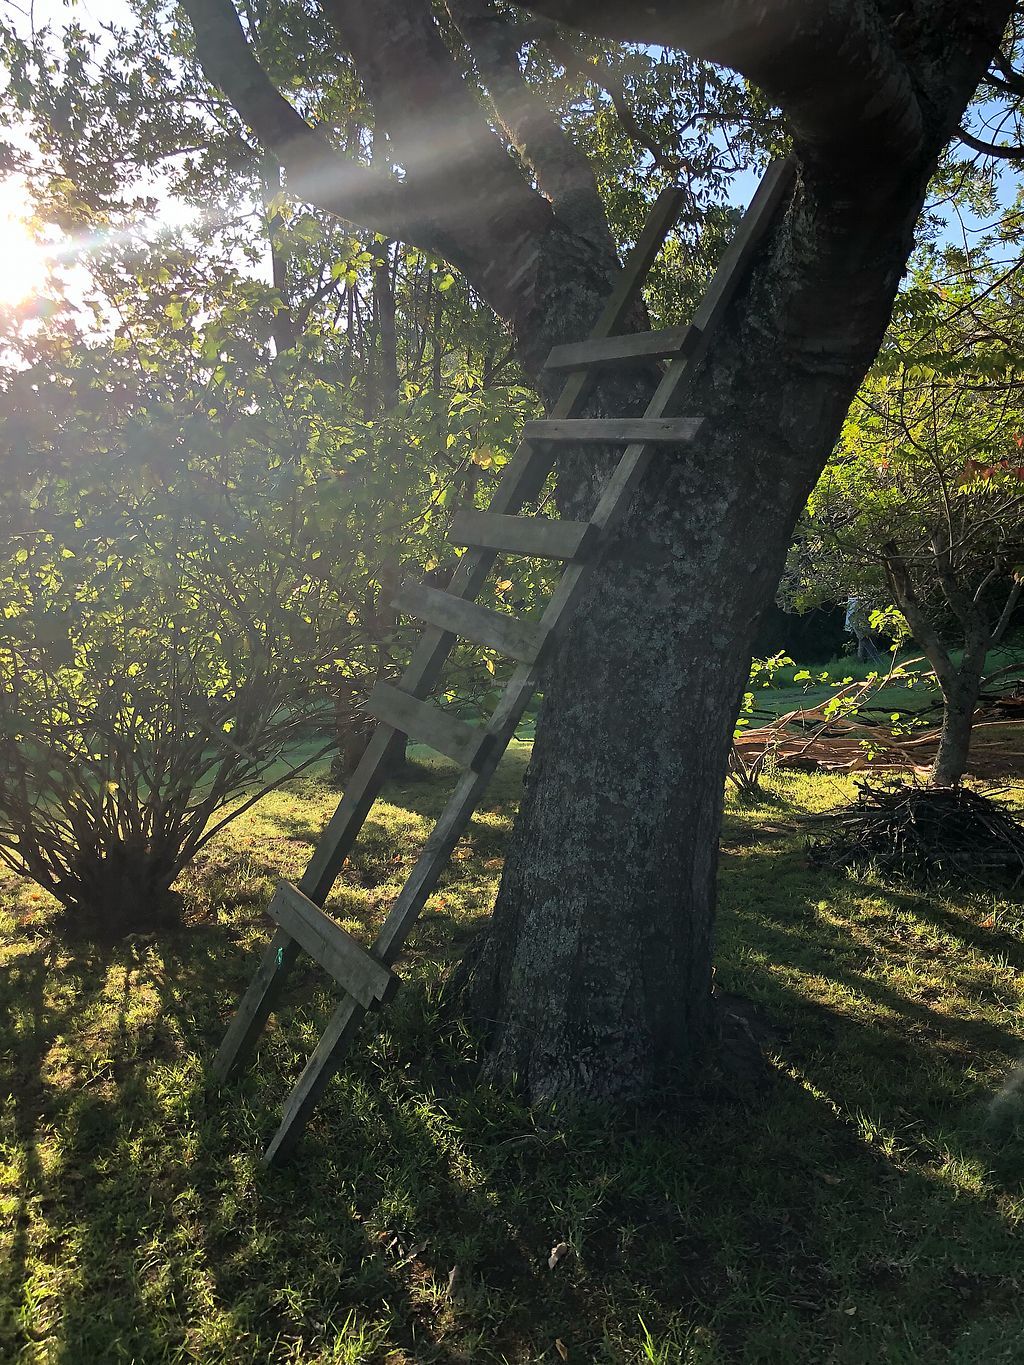 """Photo of Peace of Eden  by <a href=""""/members/profile/Jadediana"""">Jadediana</a> <br/>Ladder available if you feel like chilling in a tree for a little while!  <br/> March 28, 2018  - <a href='/contact/abuse/image/91626/377469'>Report</a>"""